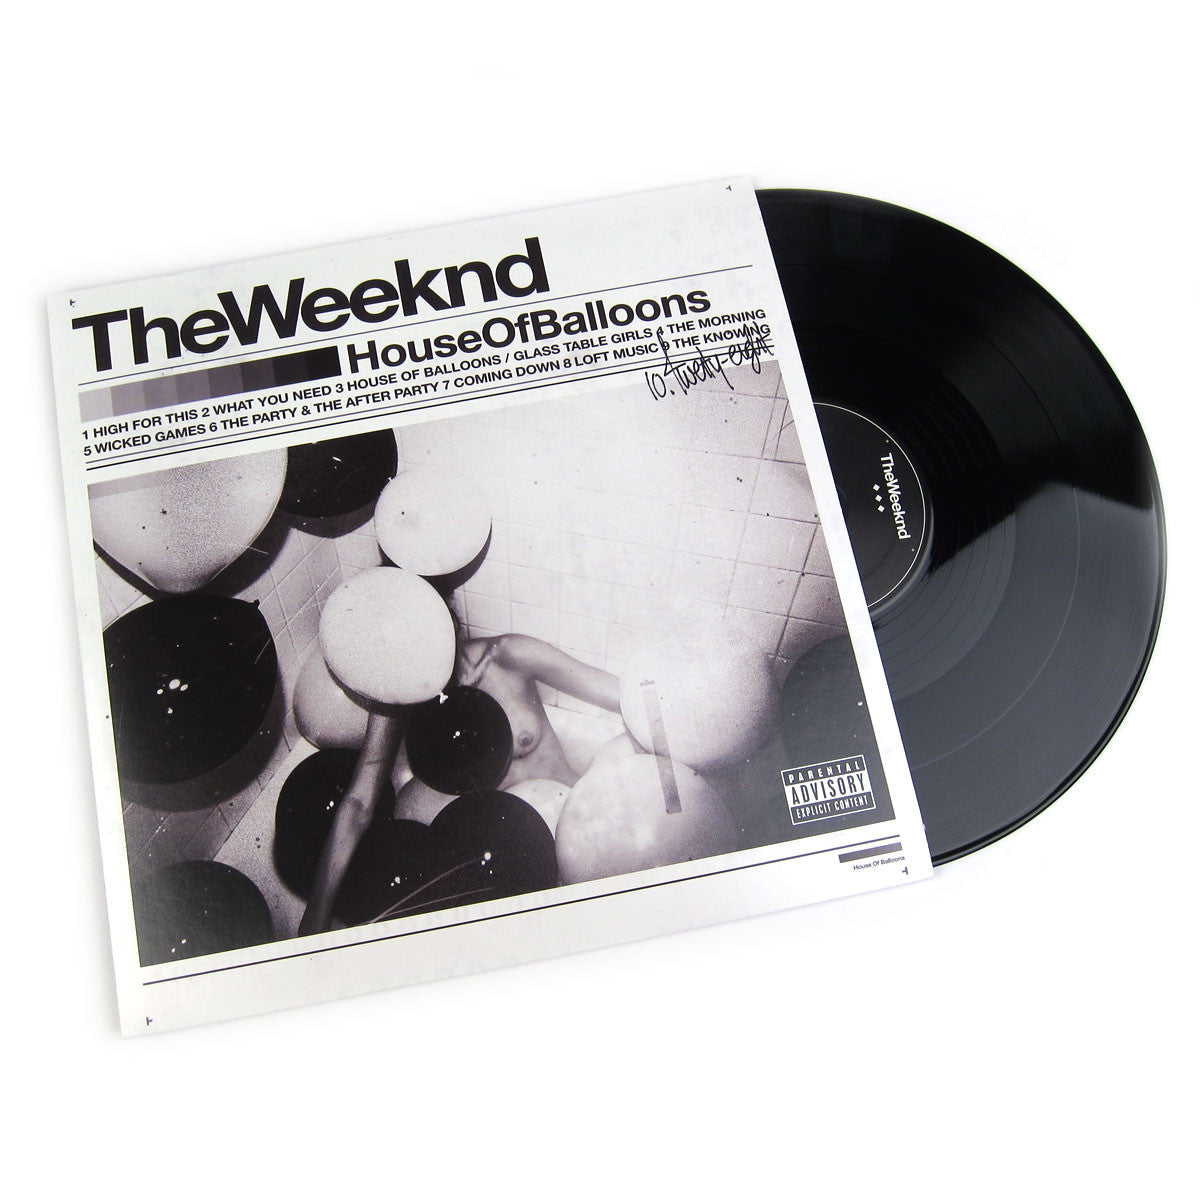 The Weeknd: House Of Balloons Vinyl 2LP